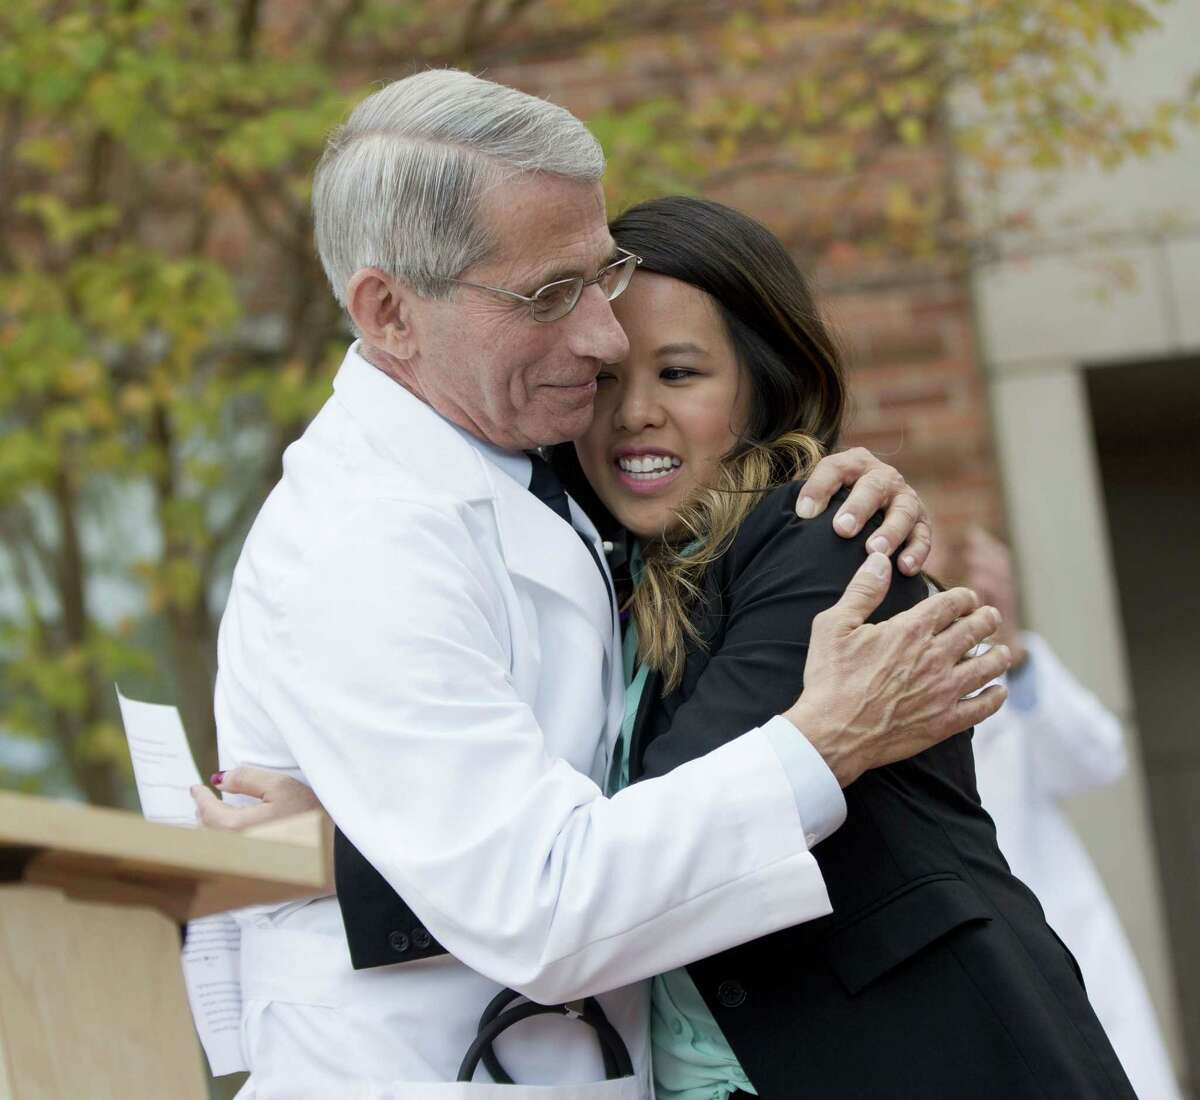 Patient Nina Pham is hugged by Dr. Anthony Fauci, director of the National Institute of Allergy and Infectious Diseases, outside of National Institutes of Health (NIH) in Bethesda, Md., Friday, Oct. 24, 2014. Pham, the first nurse diagnosed with Ebola after treating an infected man at a Dallas hospital is free of the virus. The 26-year-old Pham arrived last week at the NIH Clinical Center. She had been flown there from Texas Health Presbyterian Hospital Dallas. (AP Photo/Pablo Martinez Monsivais)